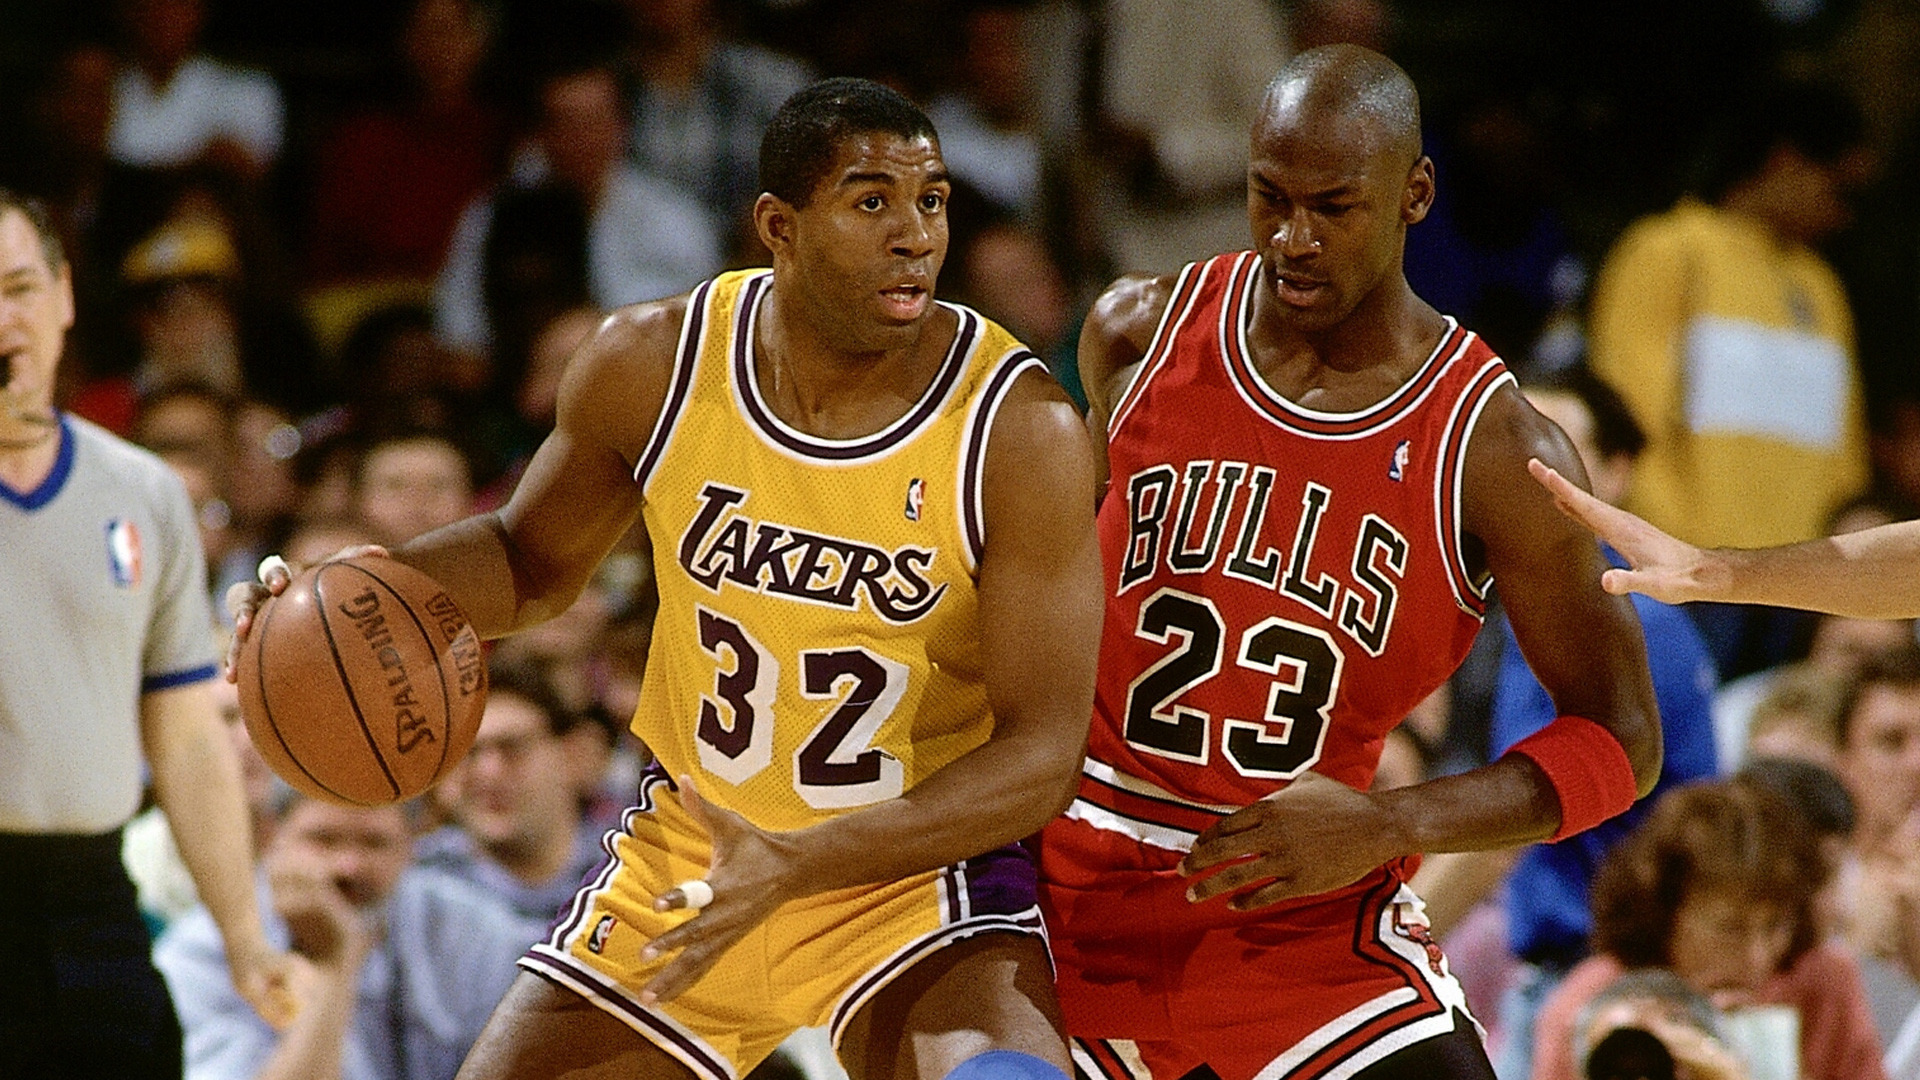 Top 5 NBA Players of ALL Time